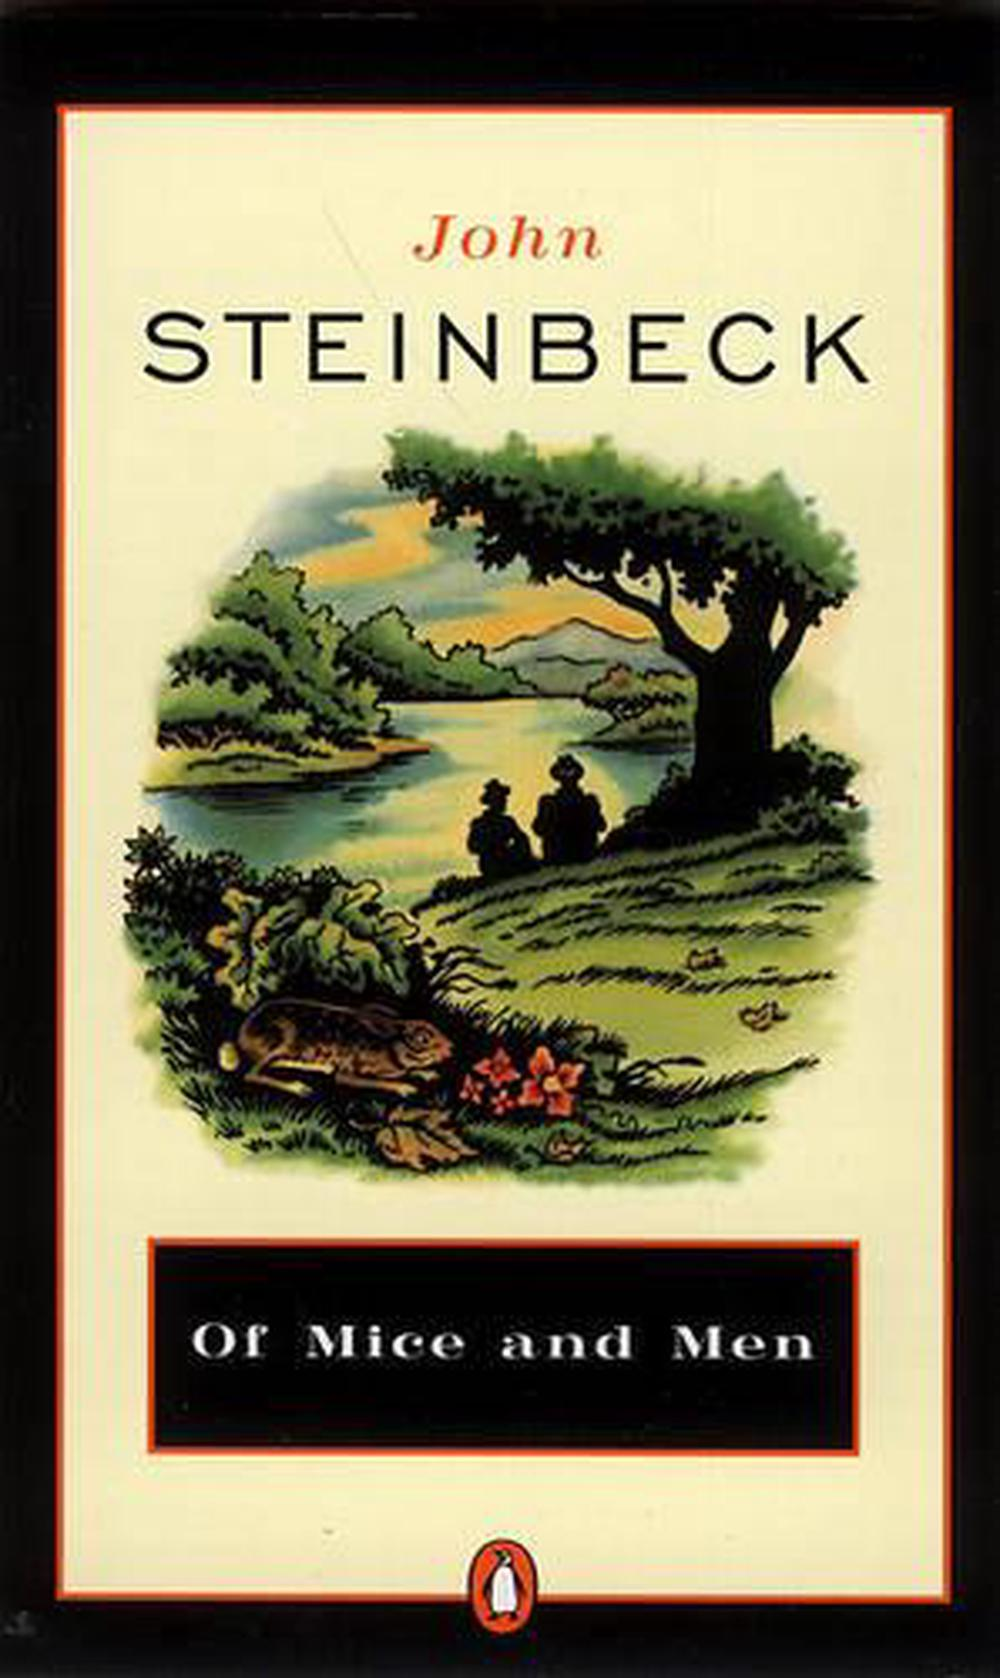 the importance of dreams in of mice and men by john steinbeck The novel 'of mice and men', written by john steinbeck is a truly fascinating novel based upon the theme of dreams this novel was published in 1937, which was towards the end of 'the great depression' that hit the united states.